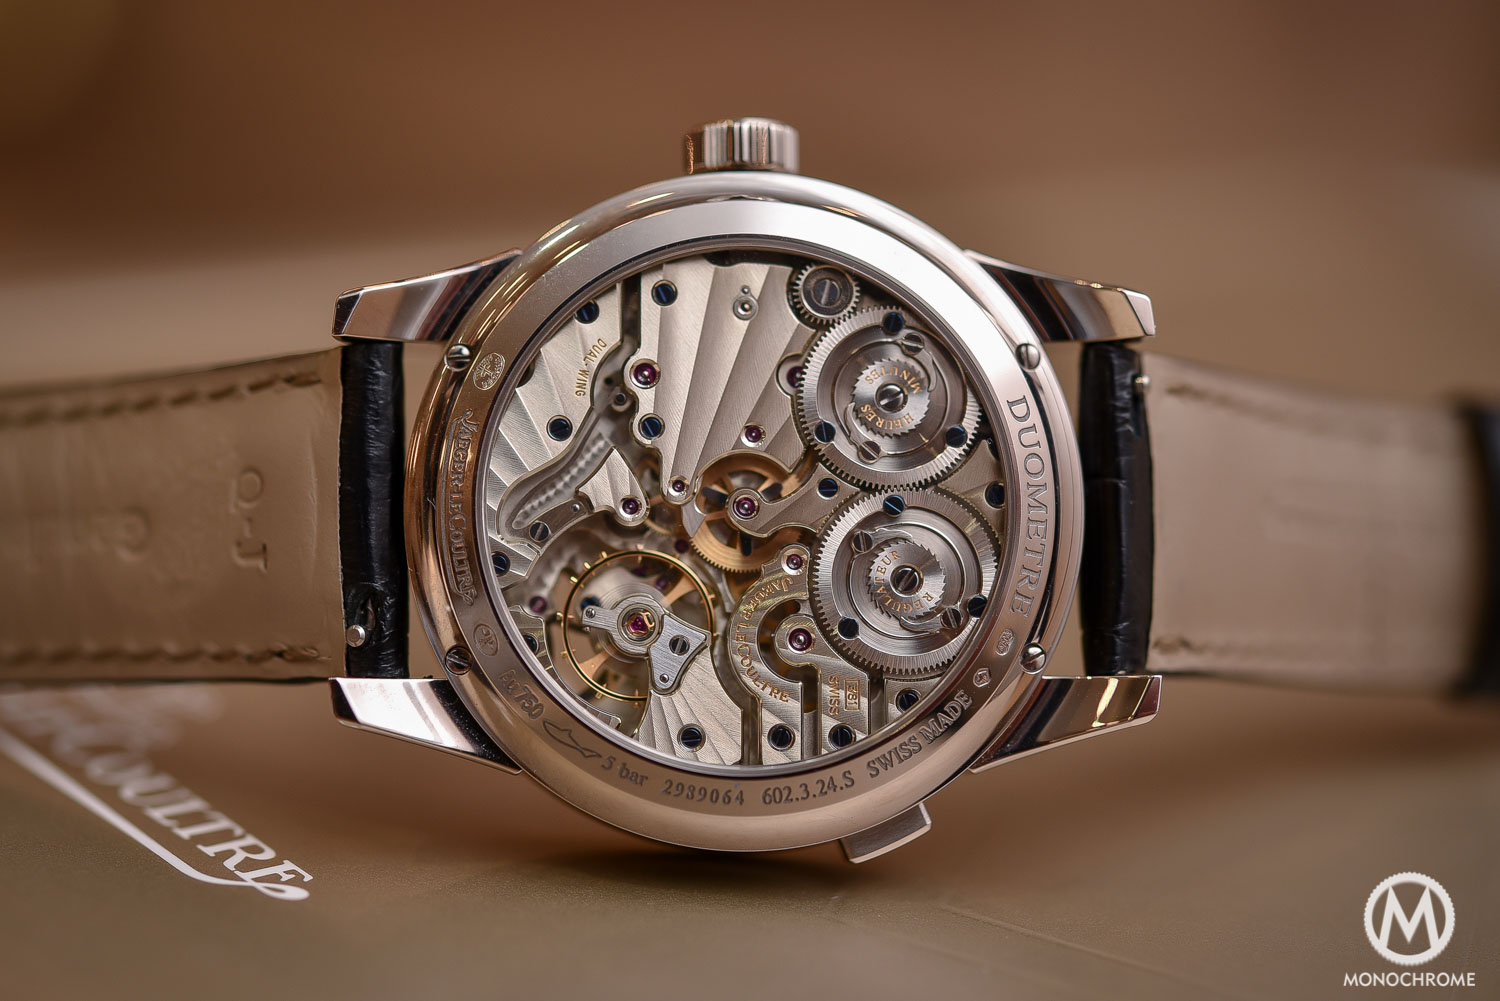 Jaeger-LeCoultre Duometre Quantieme Lunaire in white gold and opened dial - 3